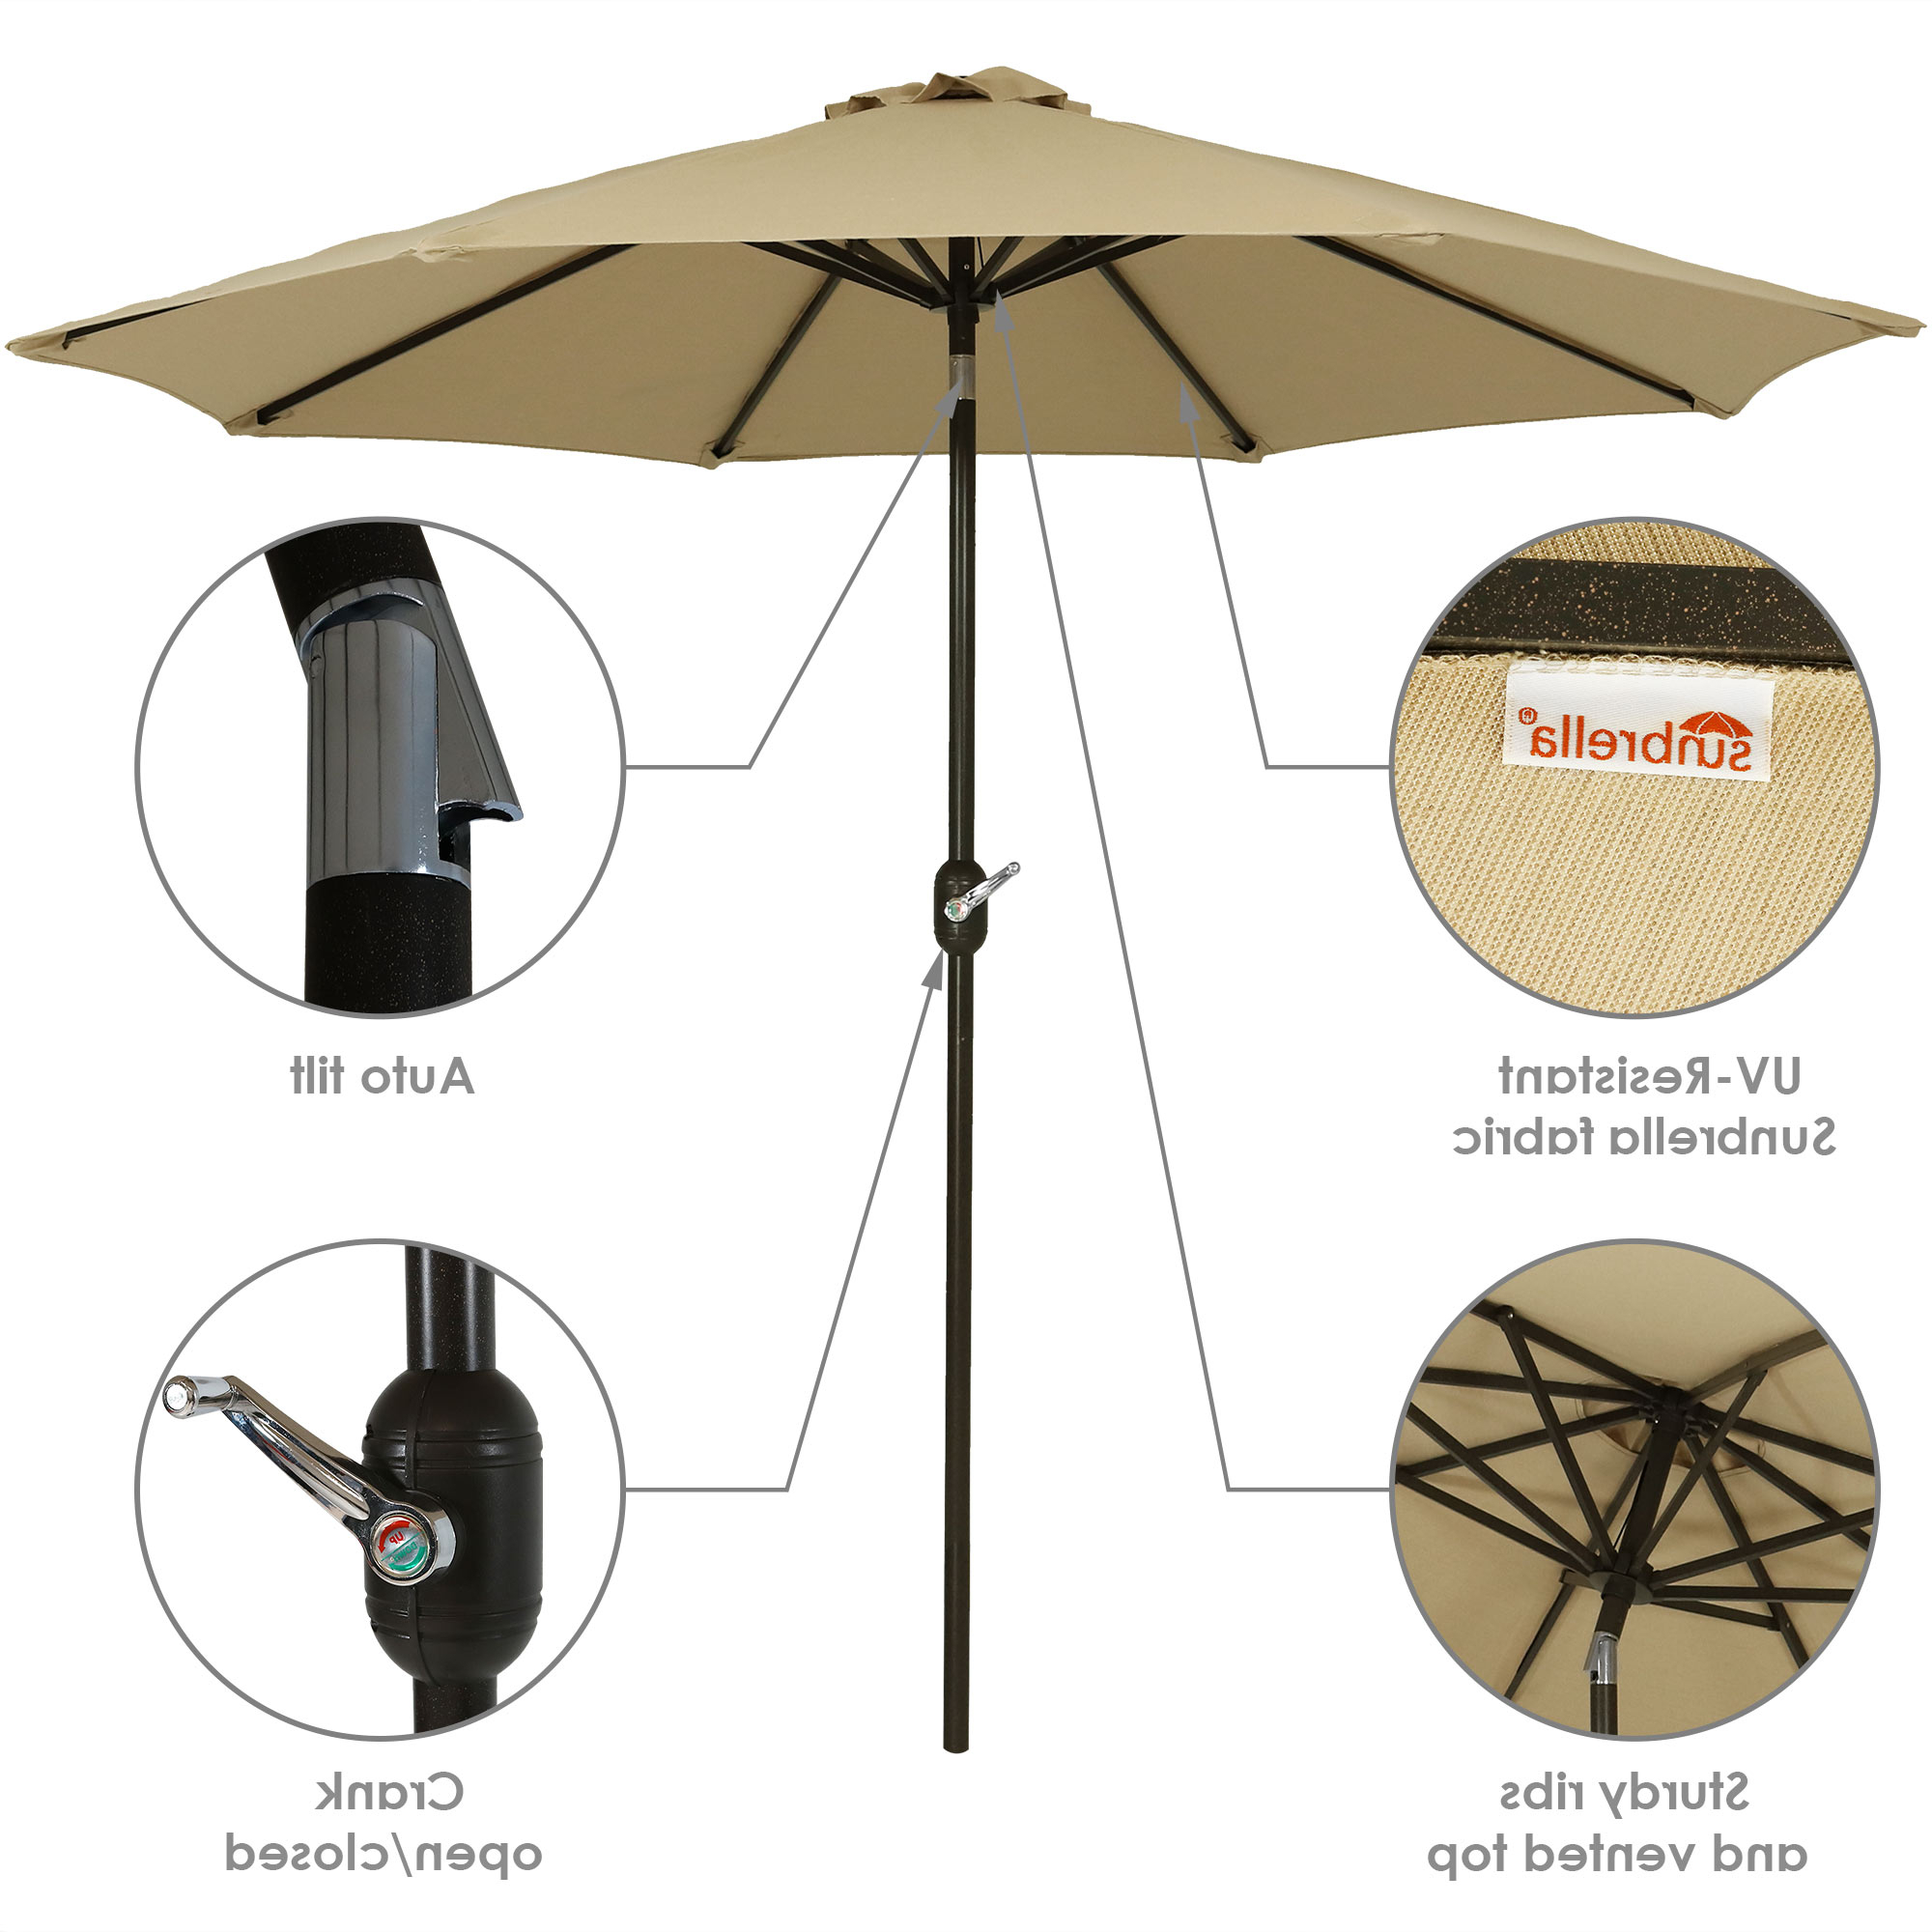 Newest Julian Market Sunbrella Umbrellas Regarding Sunnydaze Sunbrella Patio Umbrella With Auto Tilt And Crank, 9 Foot Outdoor Market Umbrella, Rust Resistant Aluminum, Sunbrella Beige (View 12 of 20)